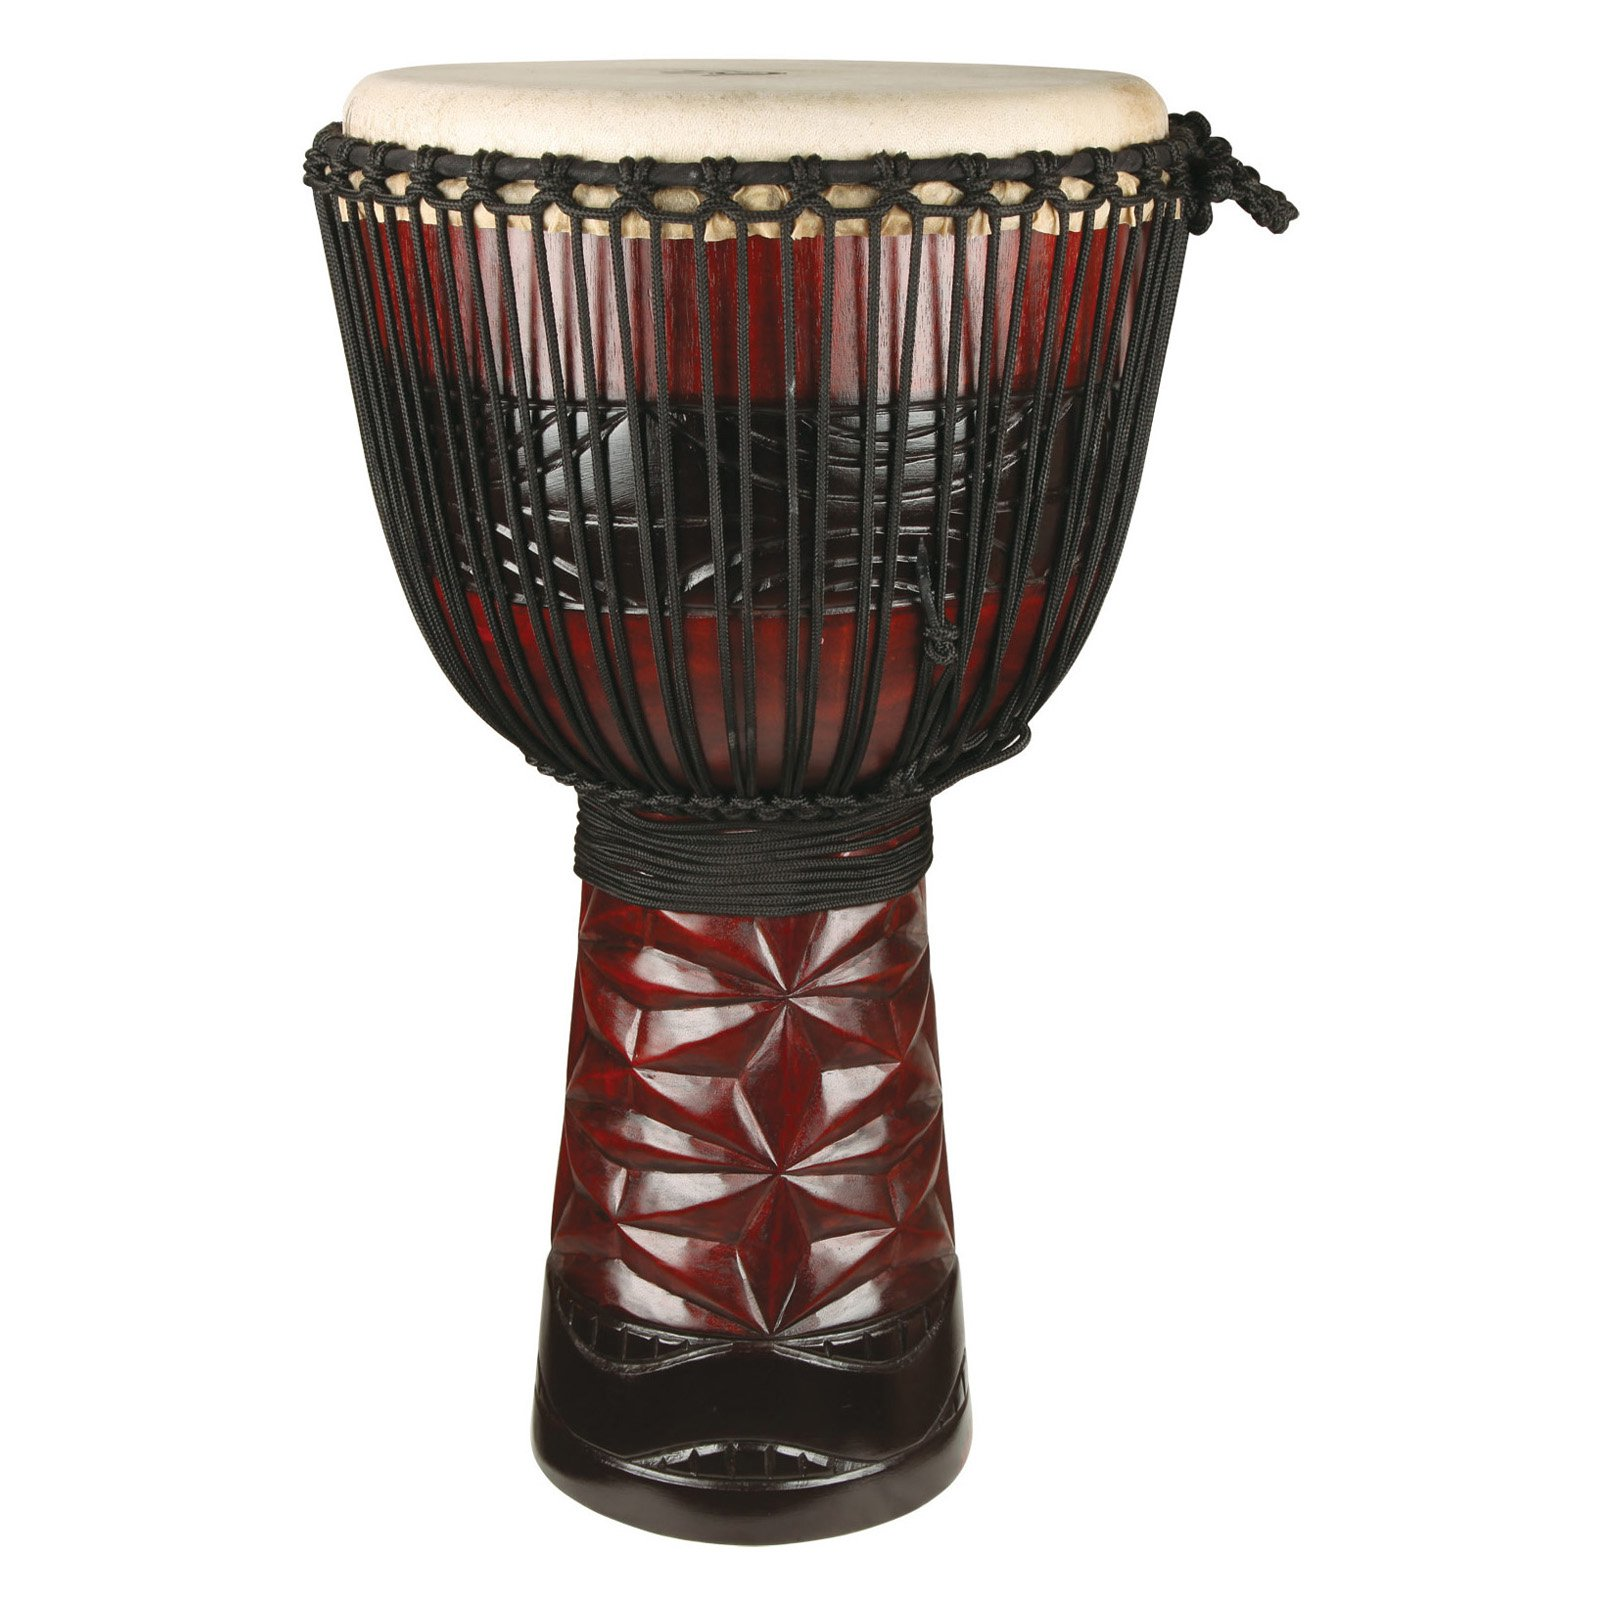 X8 Drums Ruby Professional Djembe Drum